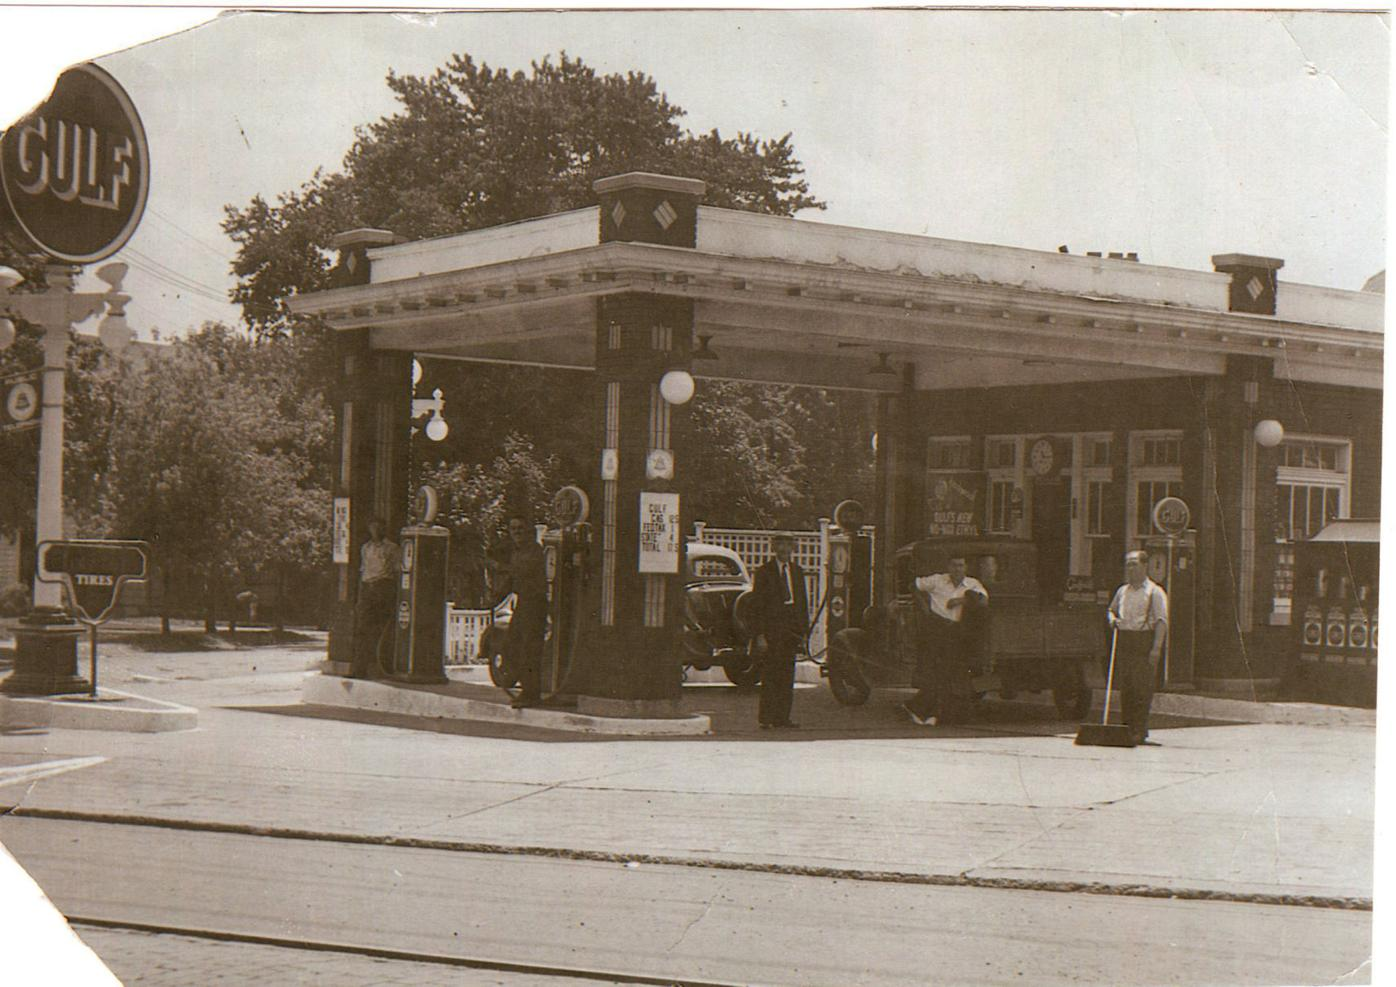 West Side AUto, circa 1937